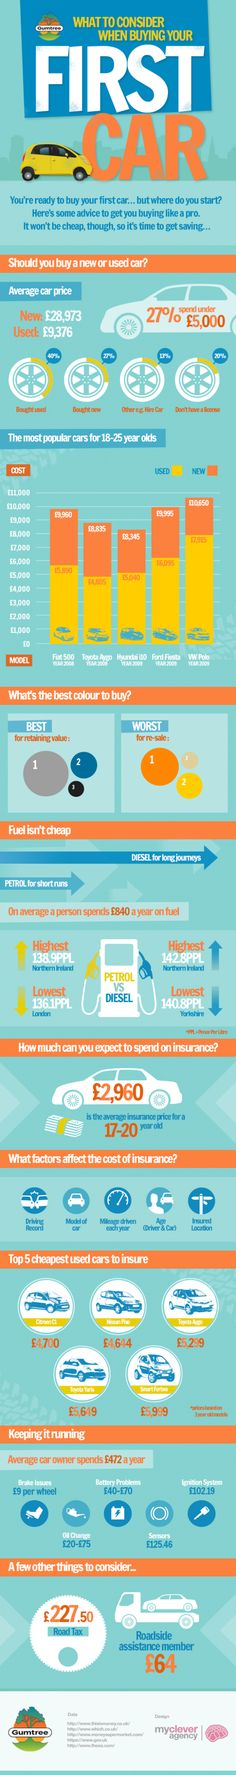 Buying Your First Car #infographic  www.ibcjapan.co.jp